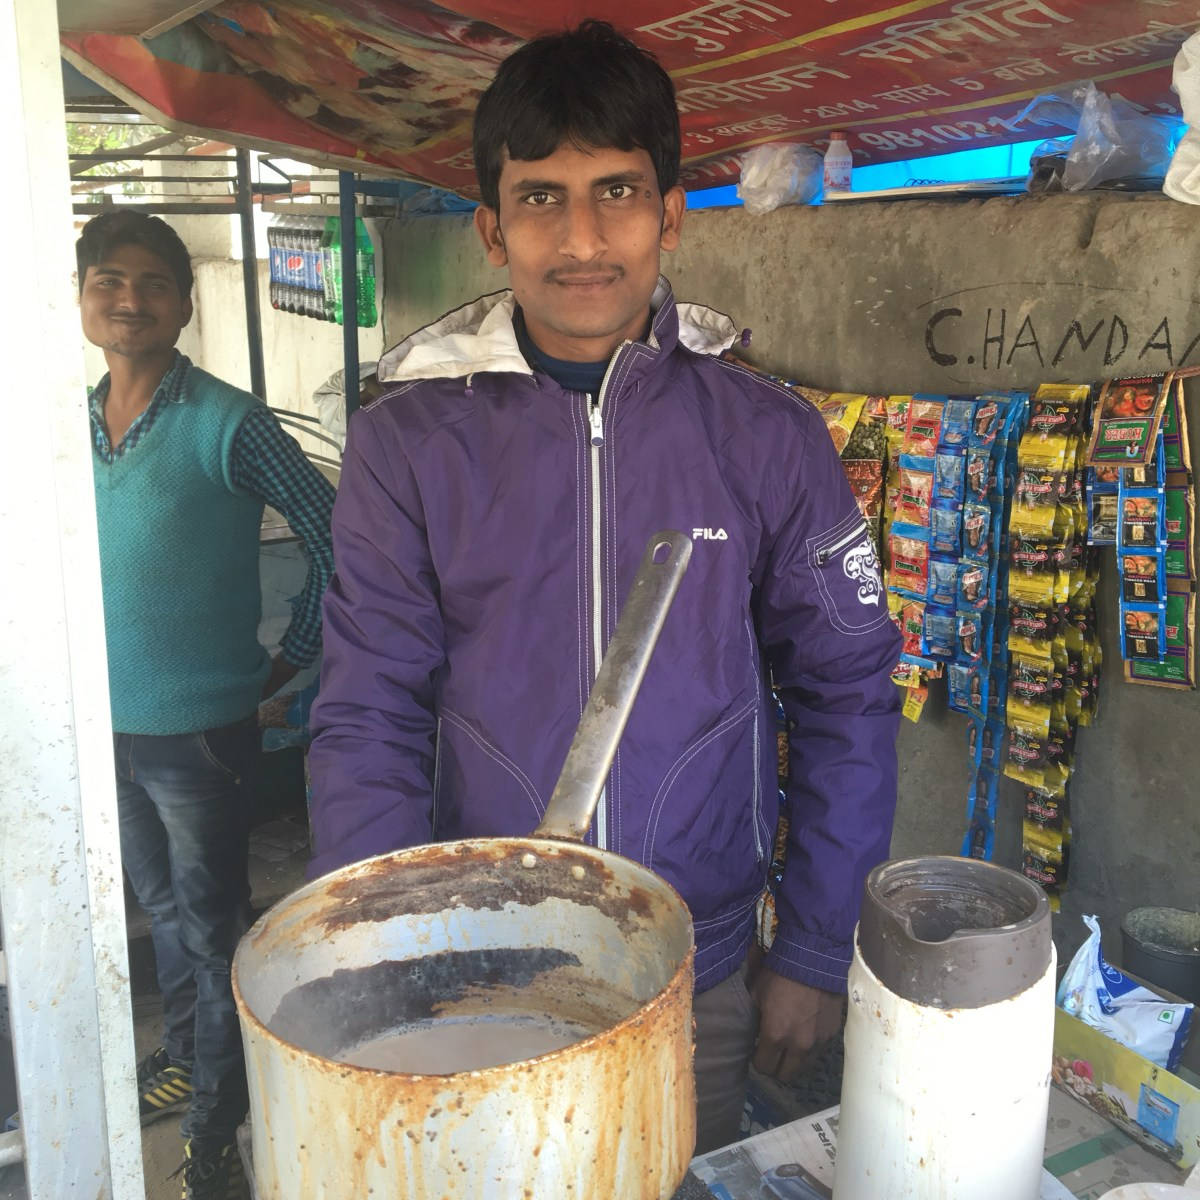 Tea Stand in Delhi, India